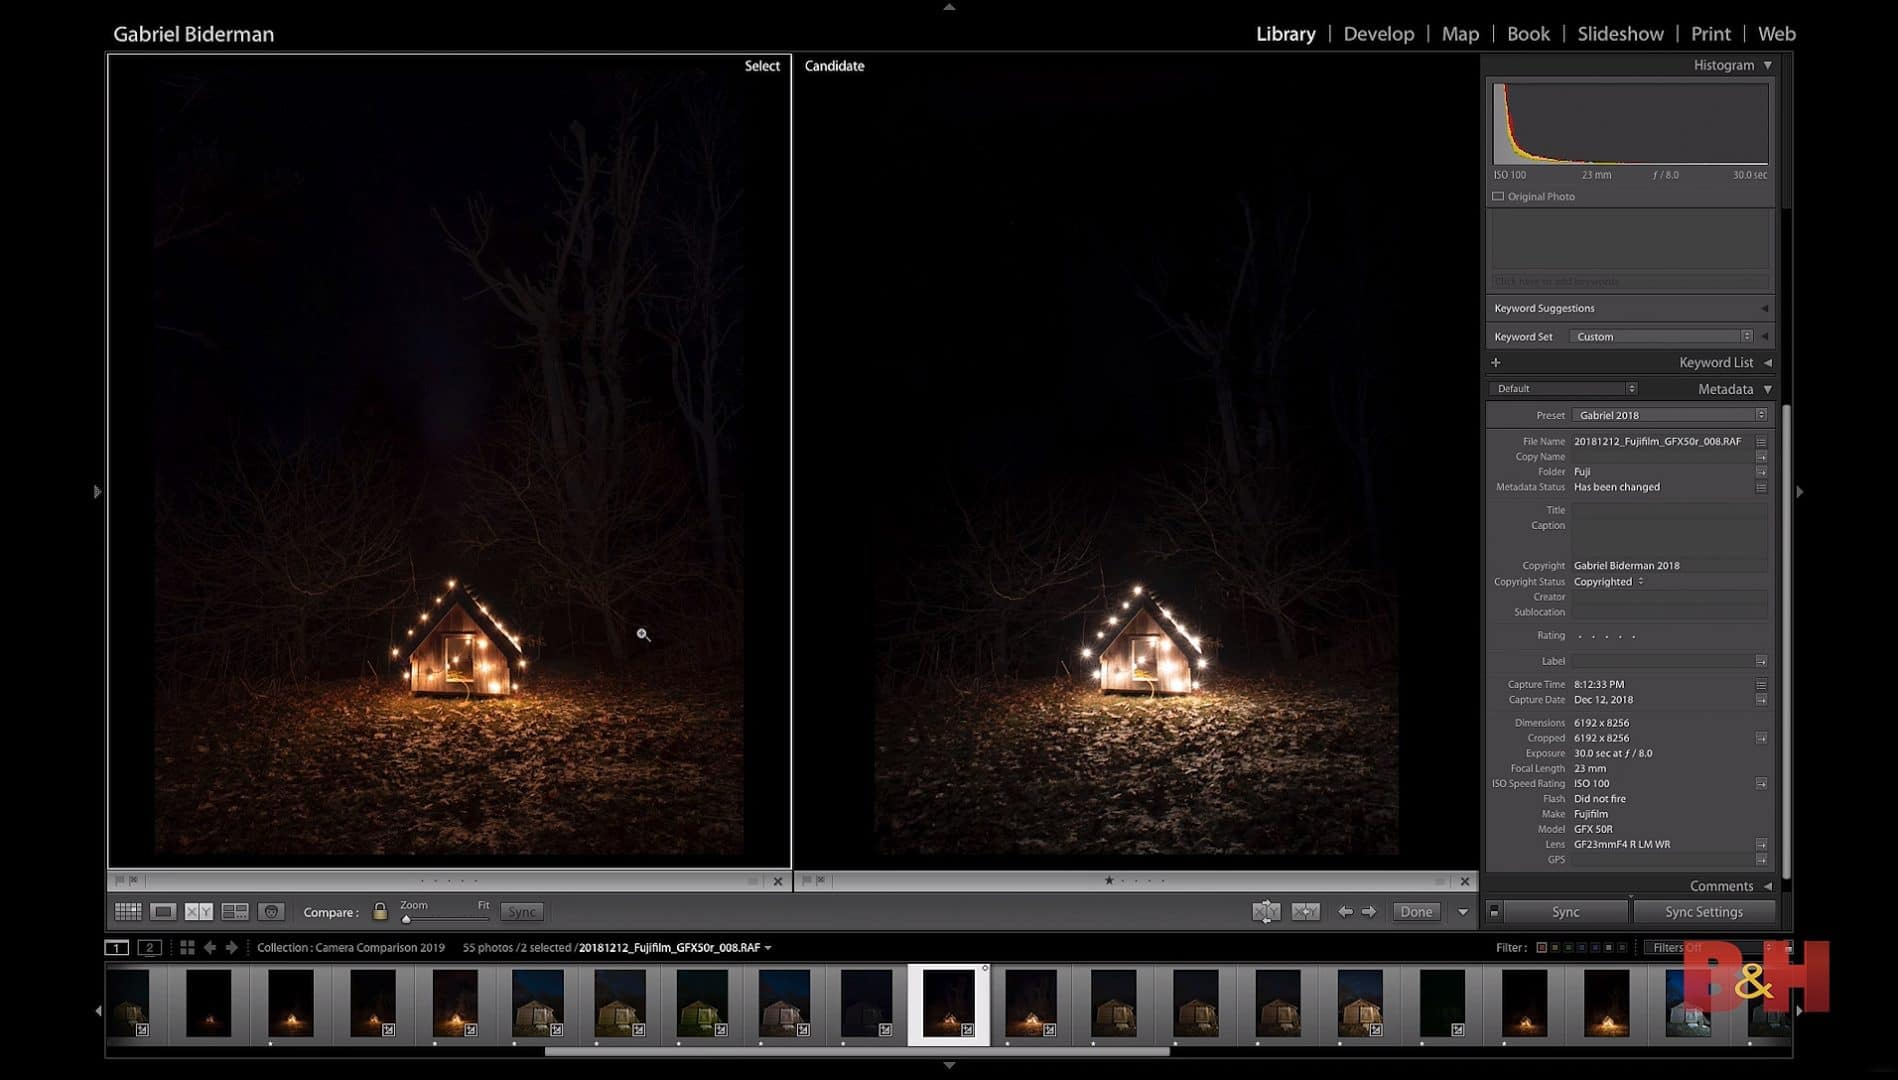 Comparing the dynamic range of the Fuji GFX 50R and the Sony a7RIII. B&H Biderman Night Photography